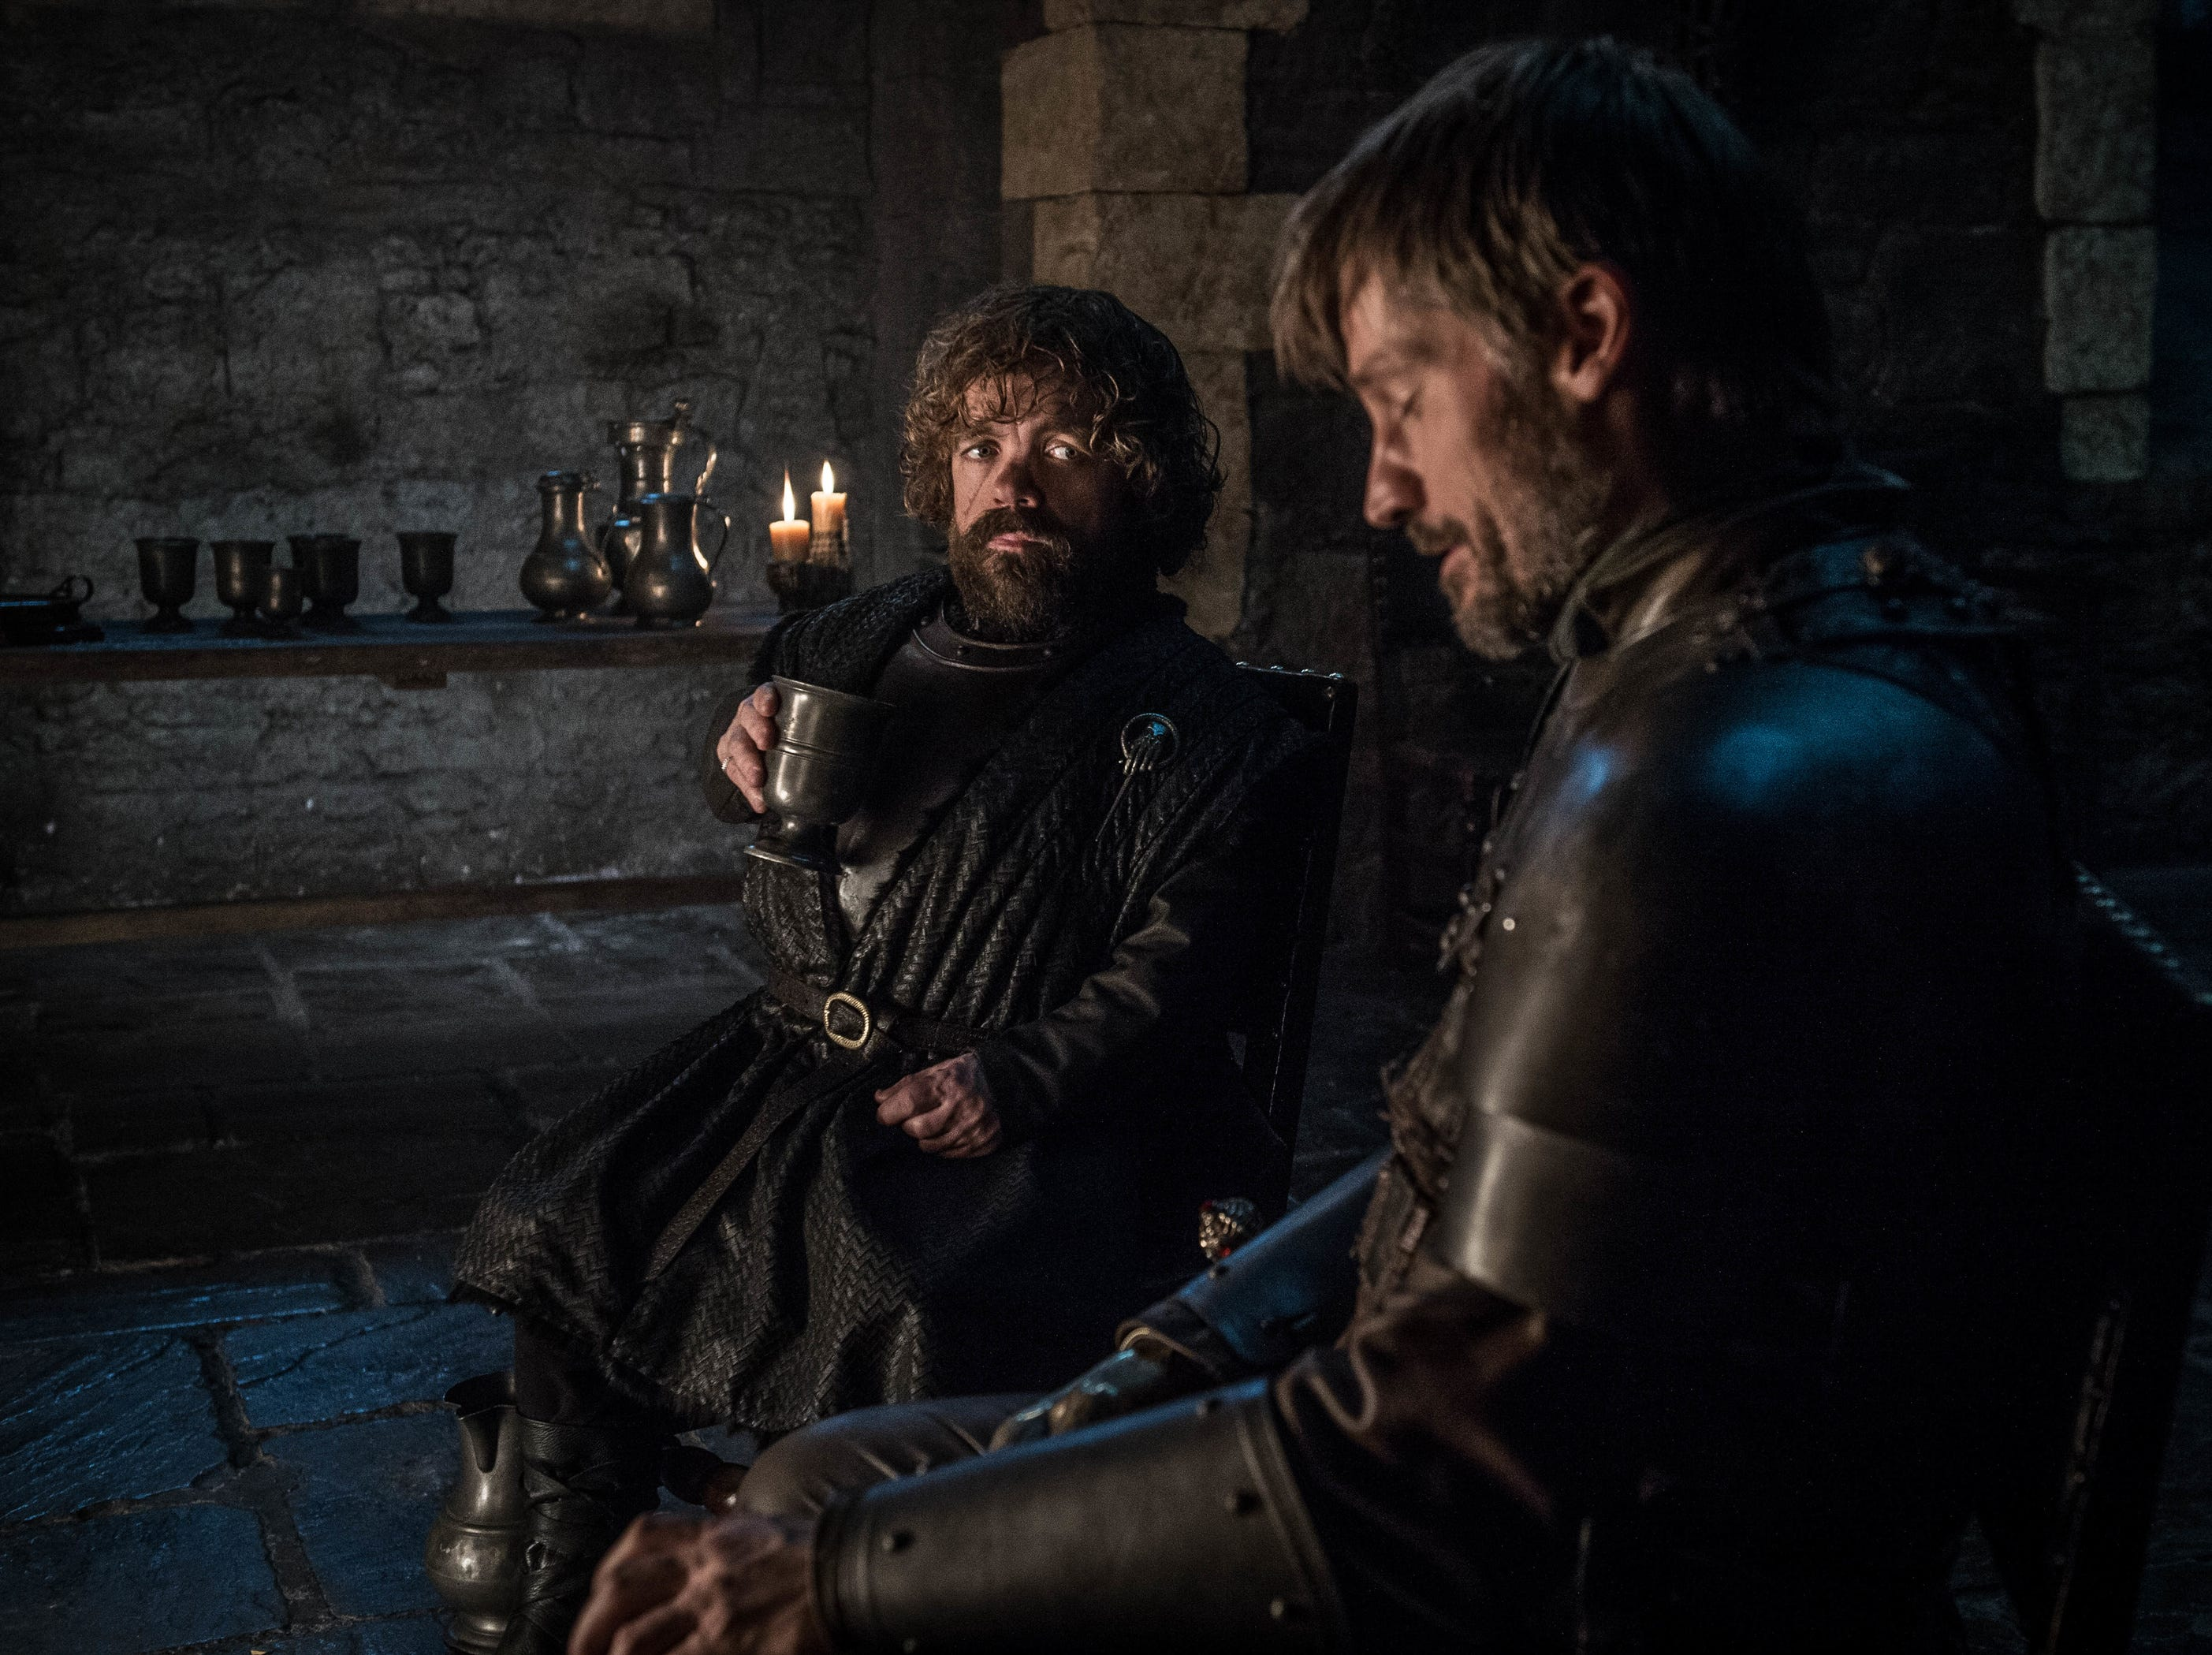 Peter Dinklage as Tyrion Lannister, left, and Nikolaj Coster-Waldau as Jaime Lannister on 'Game of Thrones.'